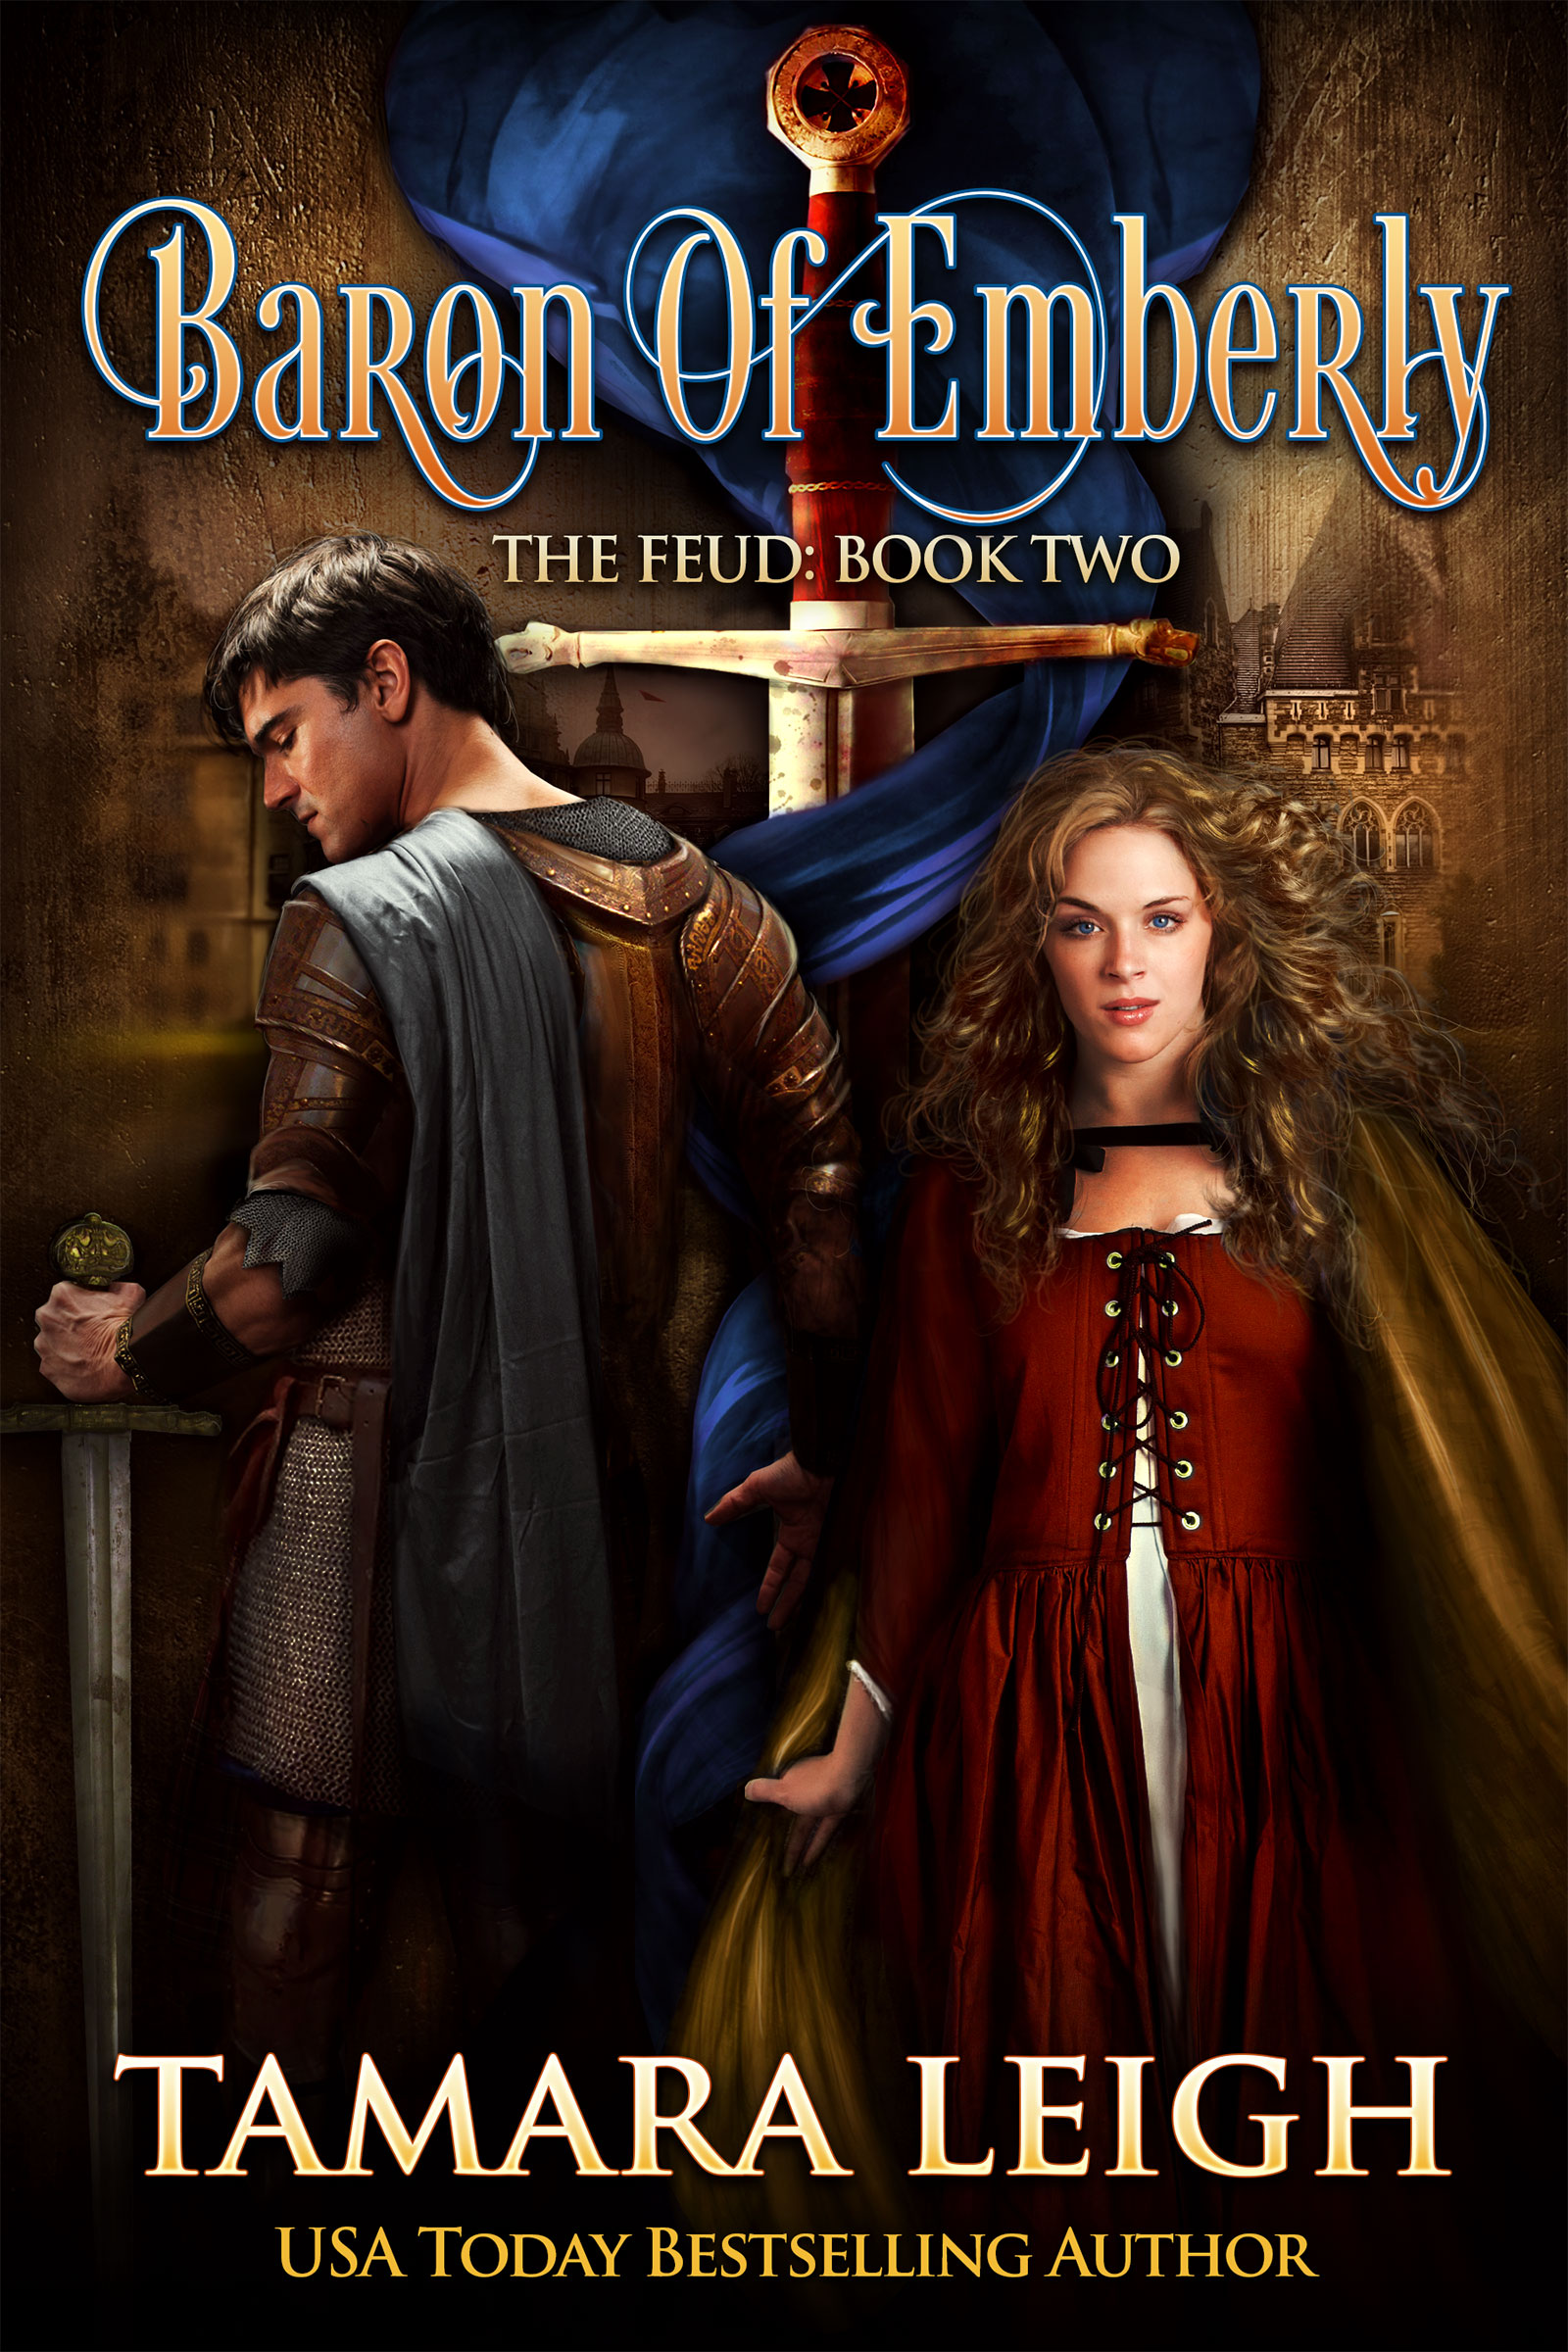 Baron Of Emberly: A Medieval Romance